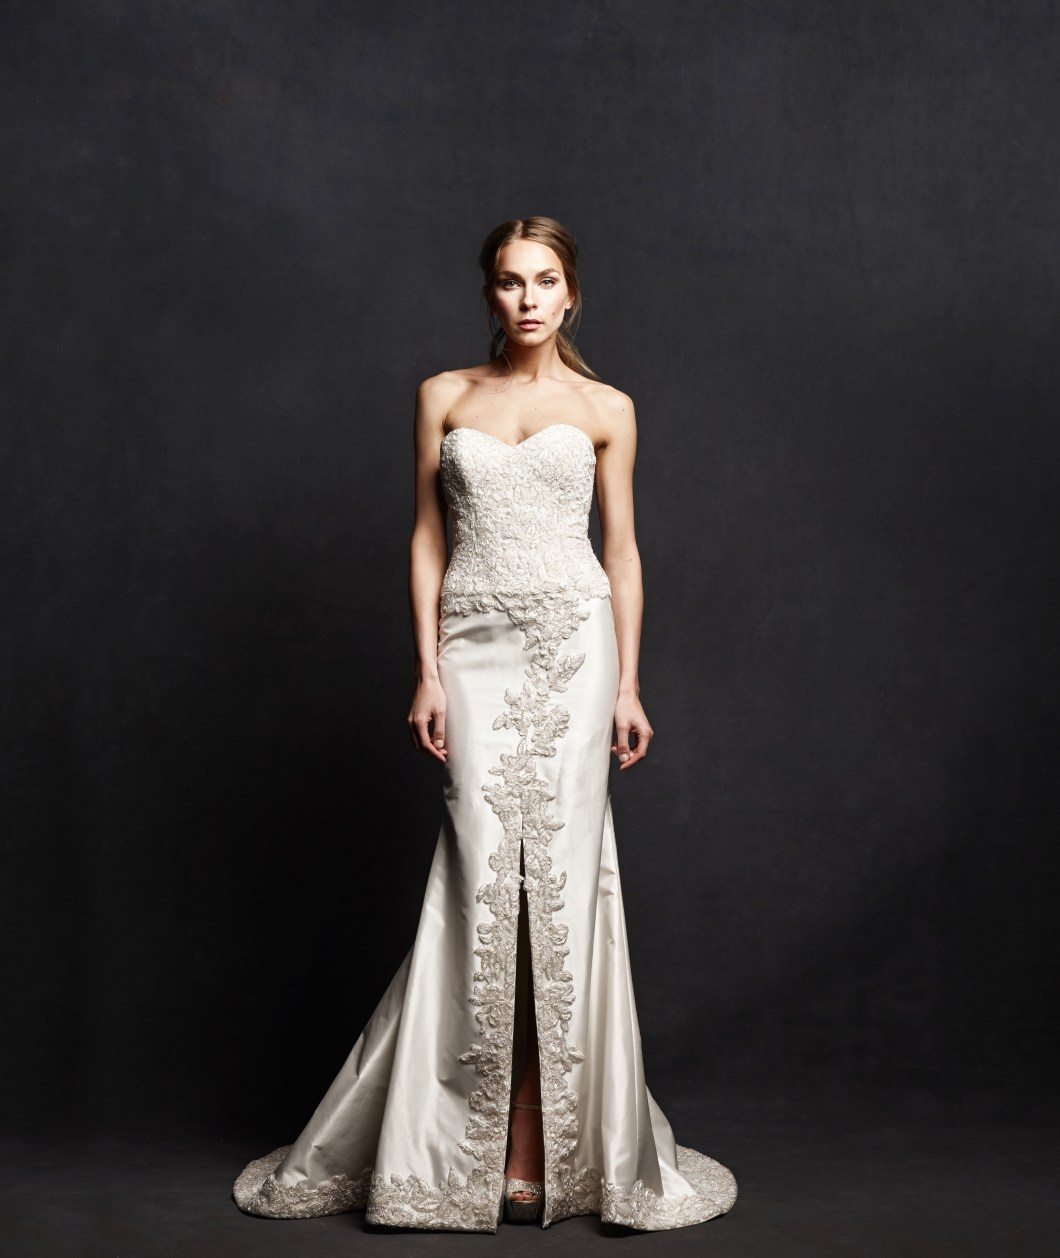 luxury wedding dress elegant isabelle armstrong